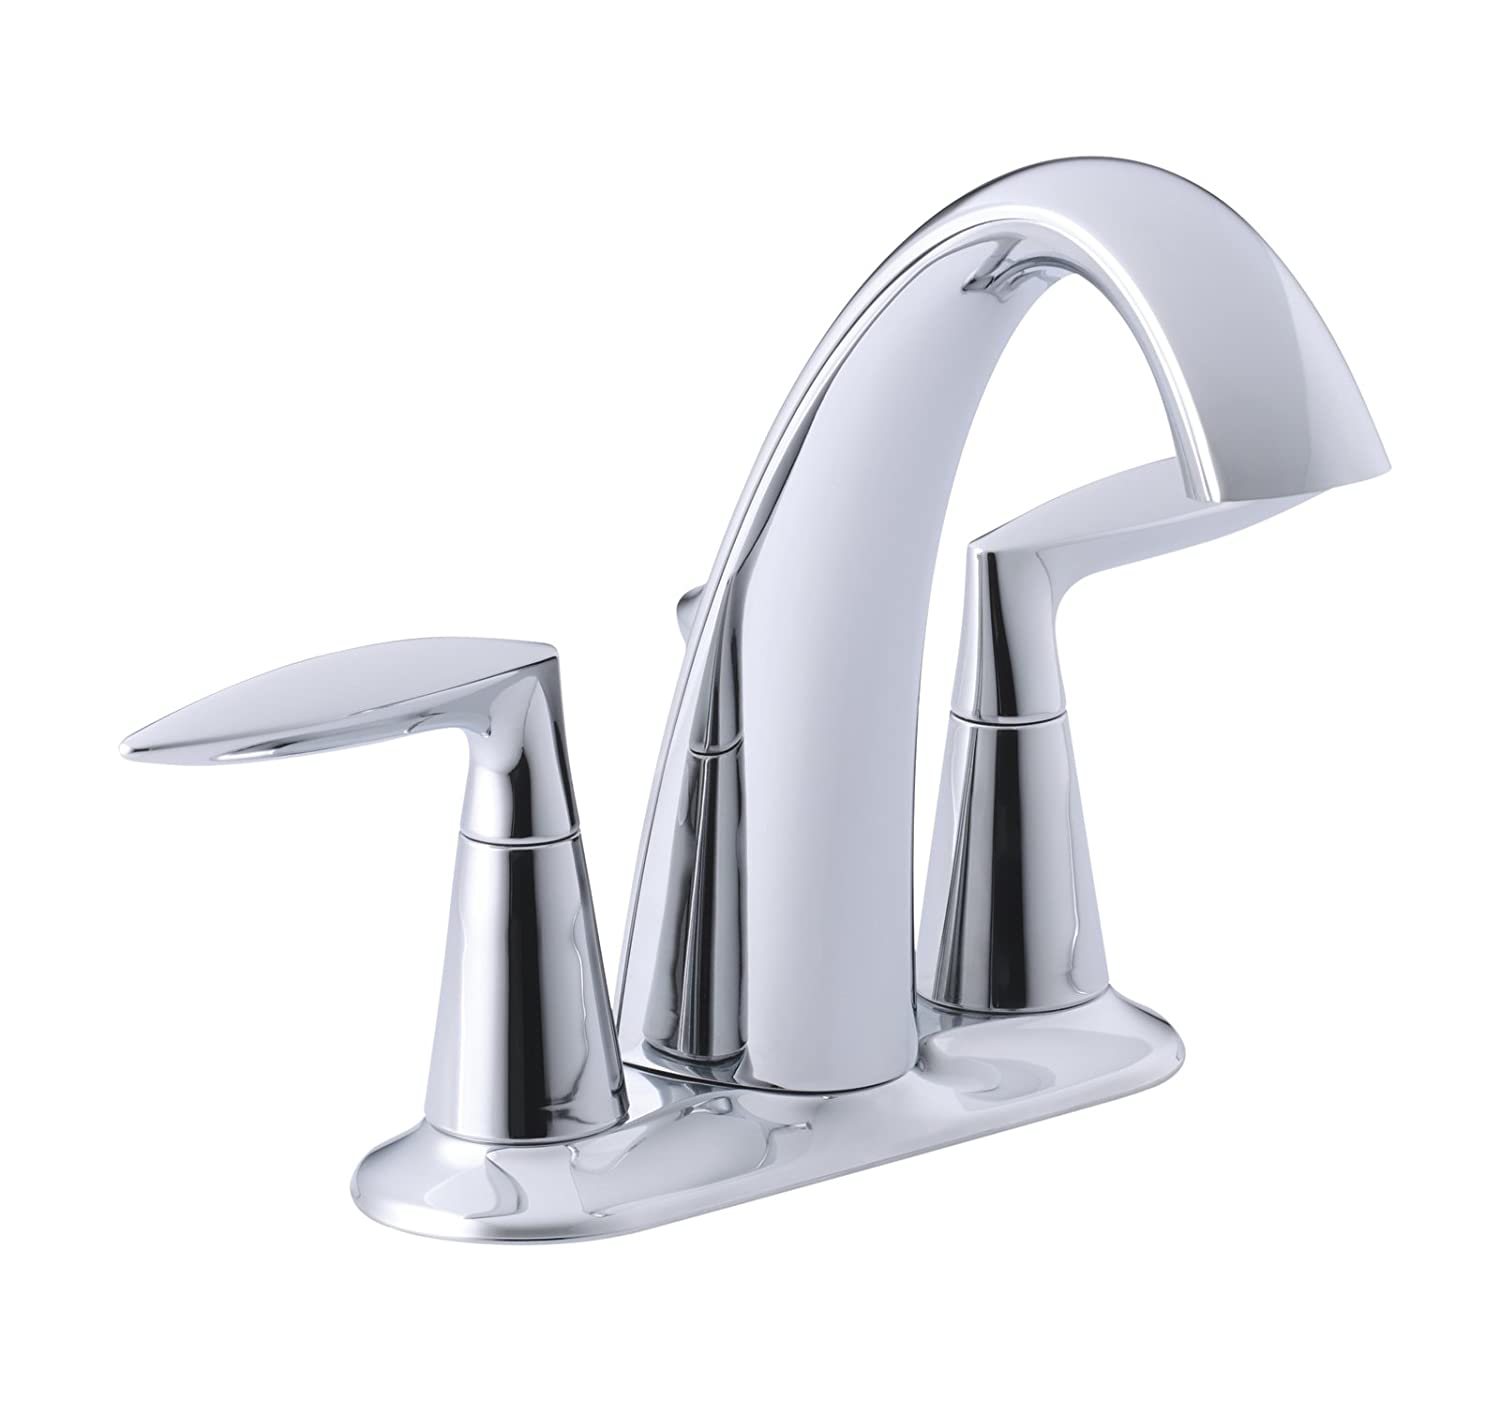 kohler k 45100 4 bn alteo centerset lavatory faucet vibrant kohler k 45100 4 bn alteo centerset lavatory faucet vibrant brushed nickel touch on bathroom sink faucets amazon com